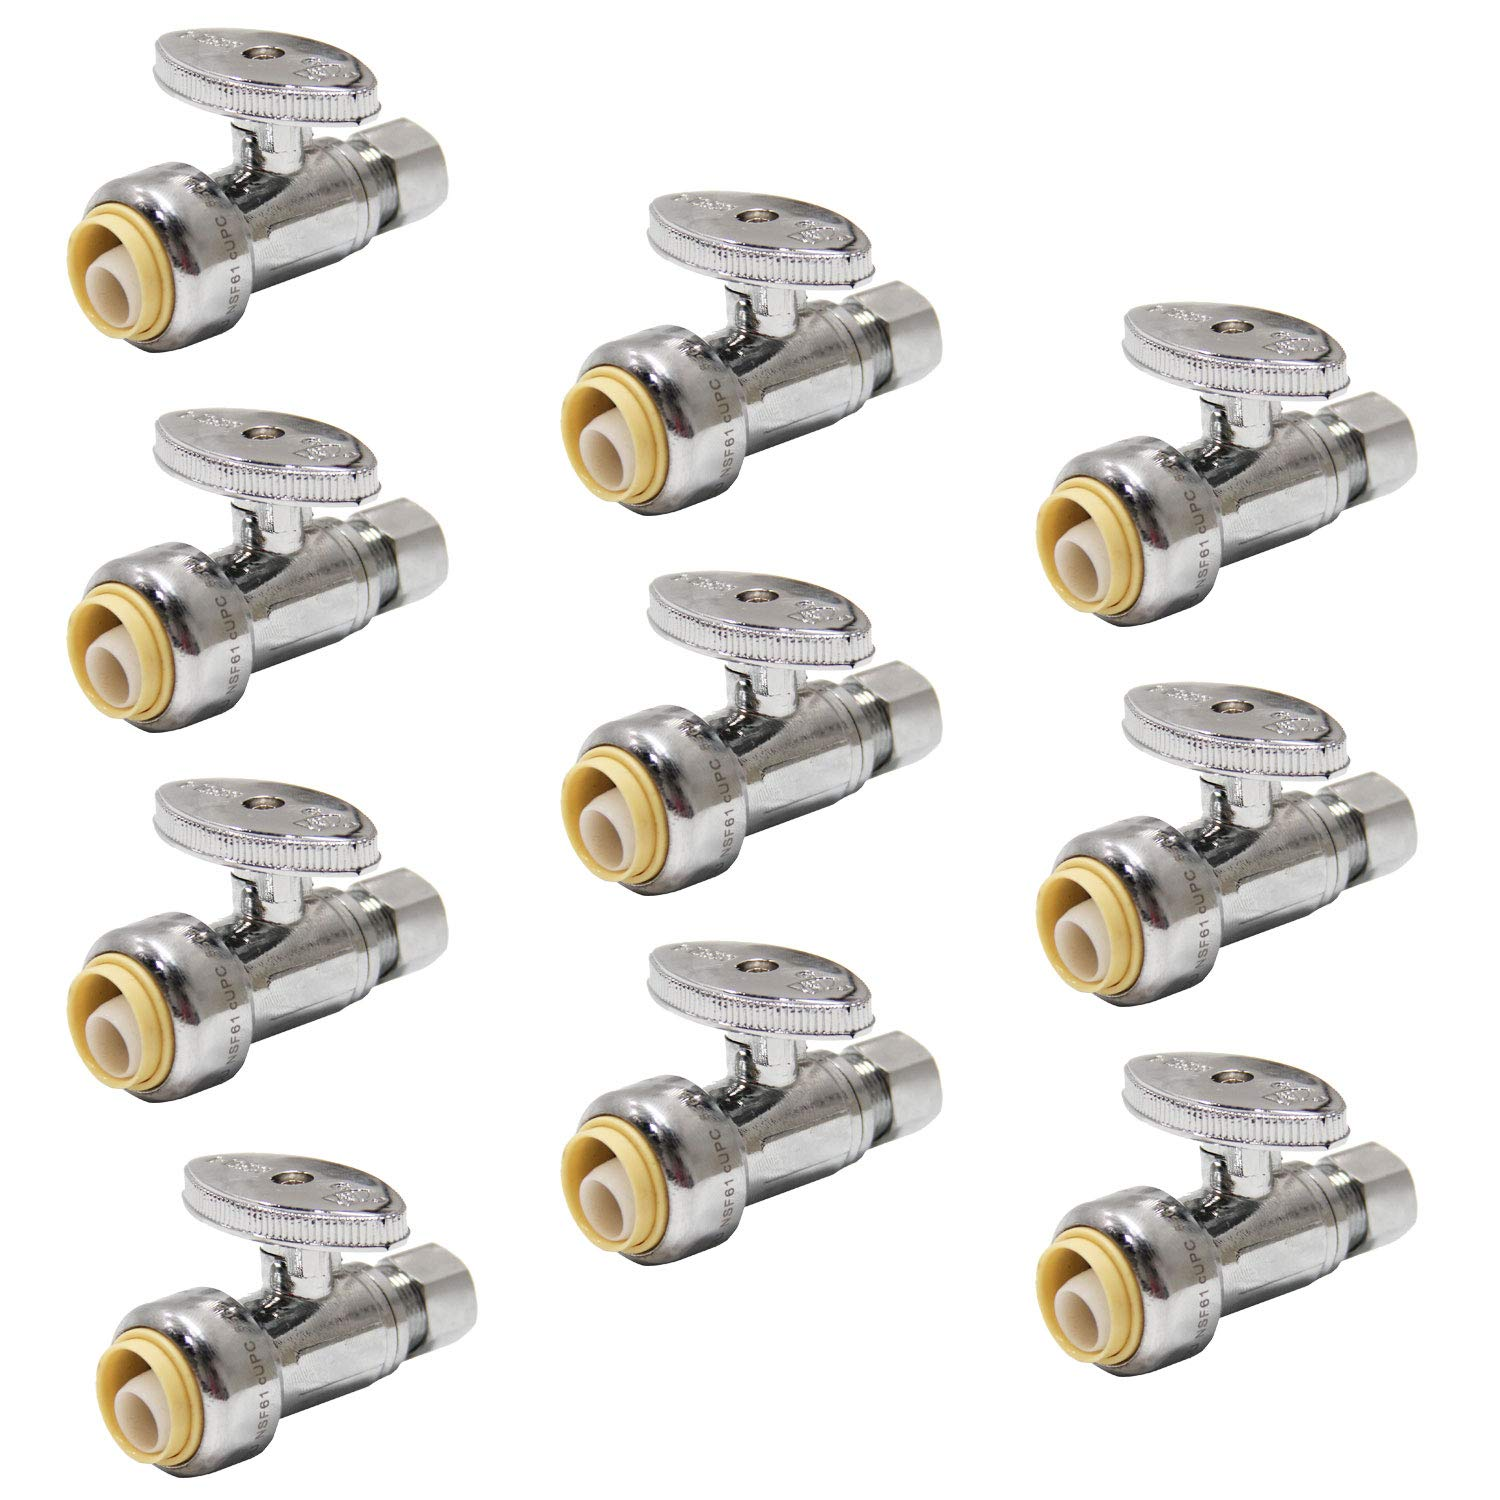 (Pack of 10) EFIELD Push Fit 1/4 Turn Straight Stop Valve Water Shut Off 1/2 Push x 3/8 Inch Compression Chrome by EFIELD